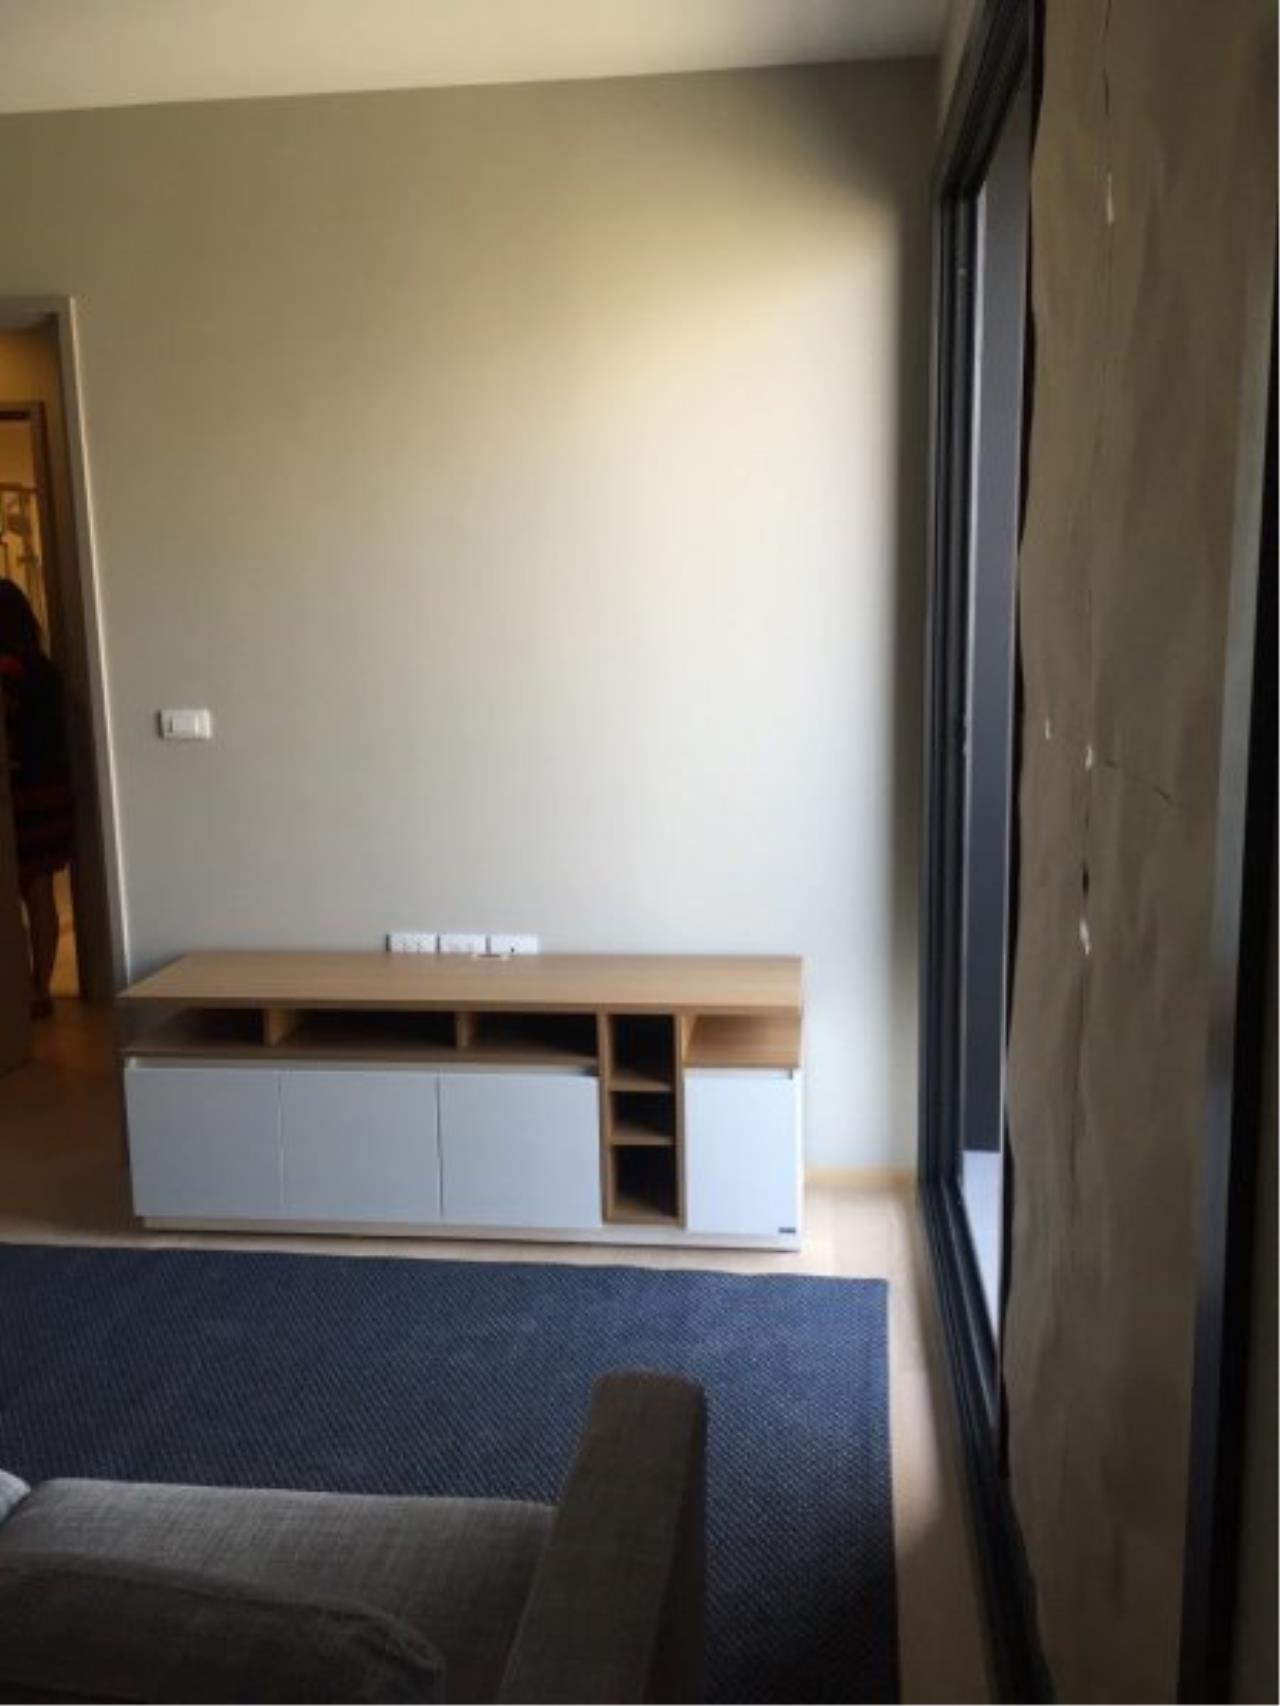 Piri Property Agency's Compact 1 Bedroom in the HQ Condo for rent on high floor 7